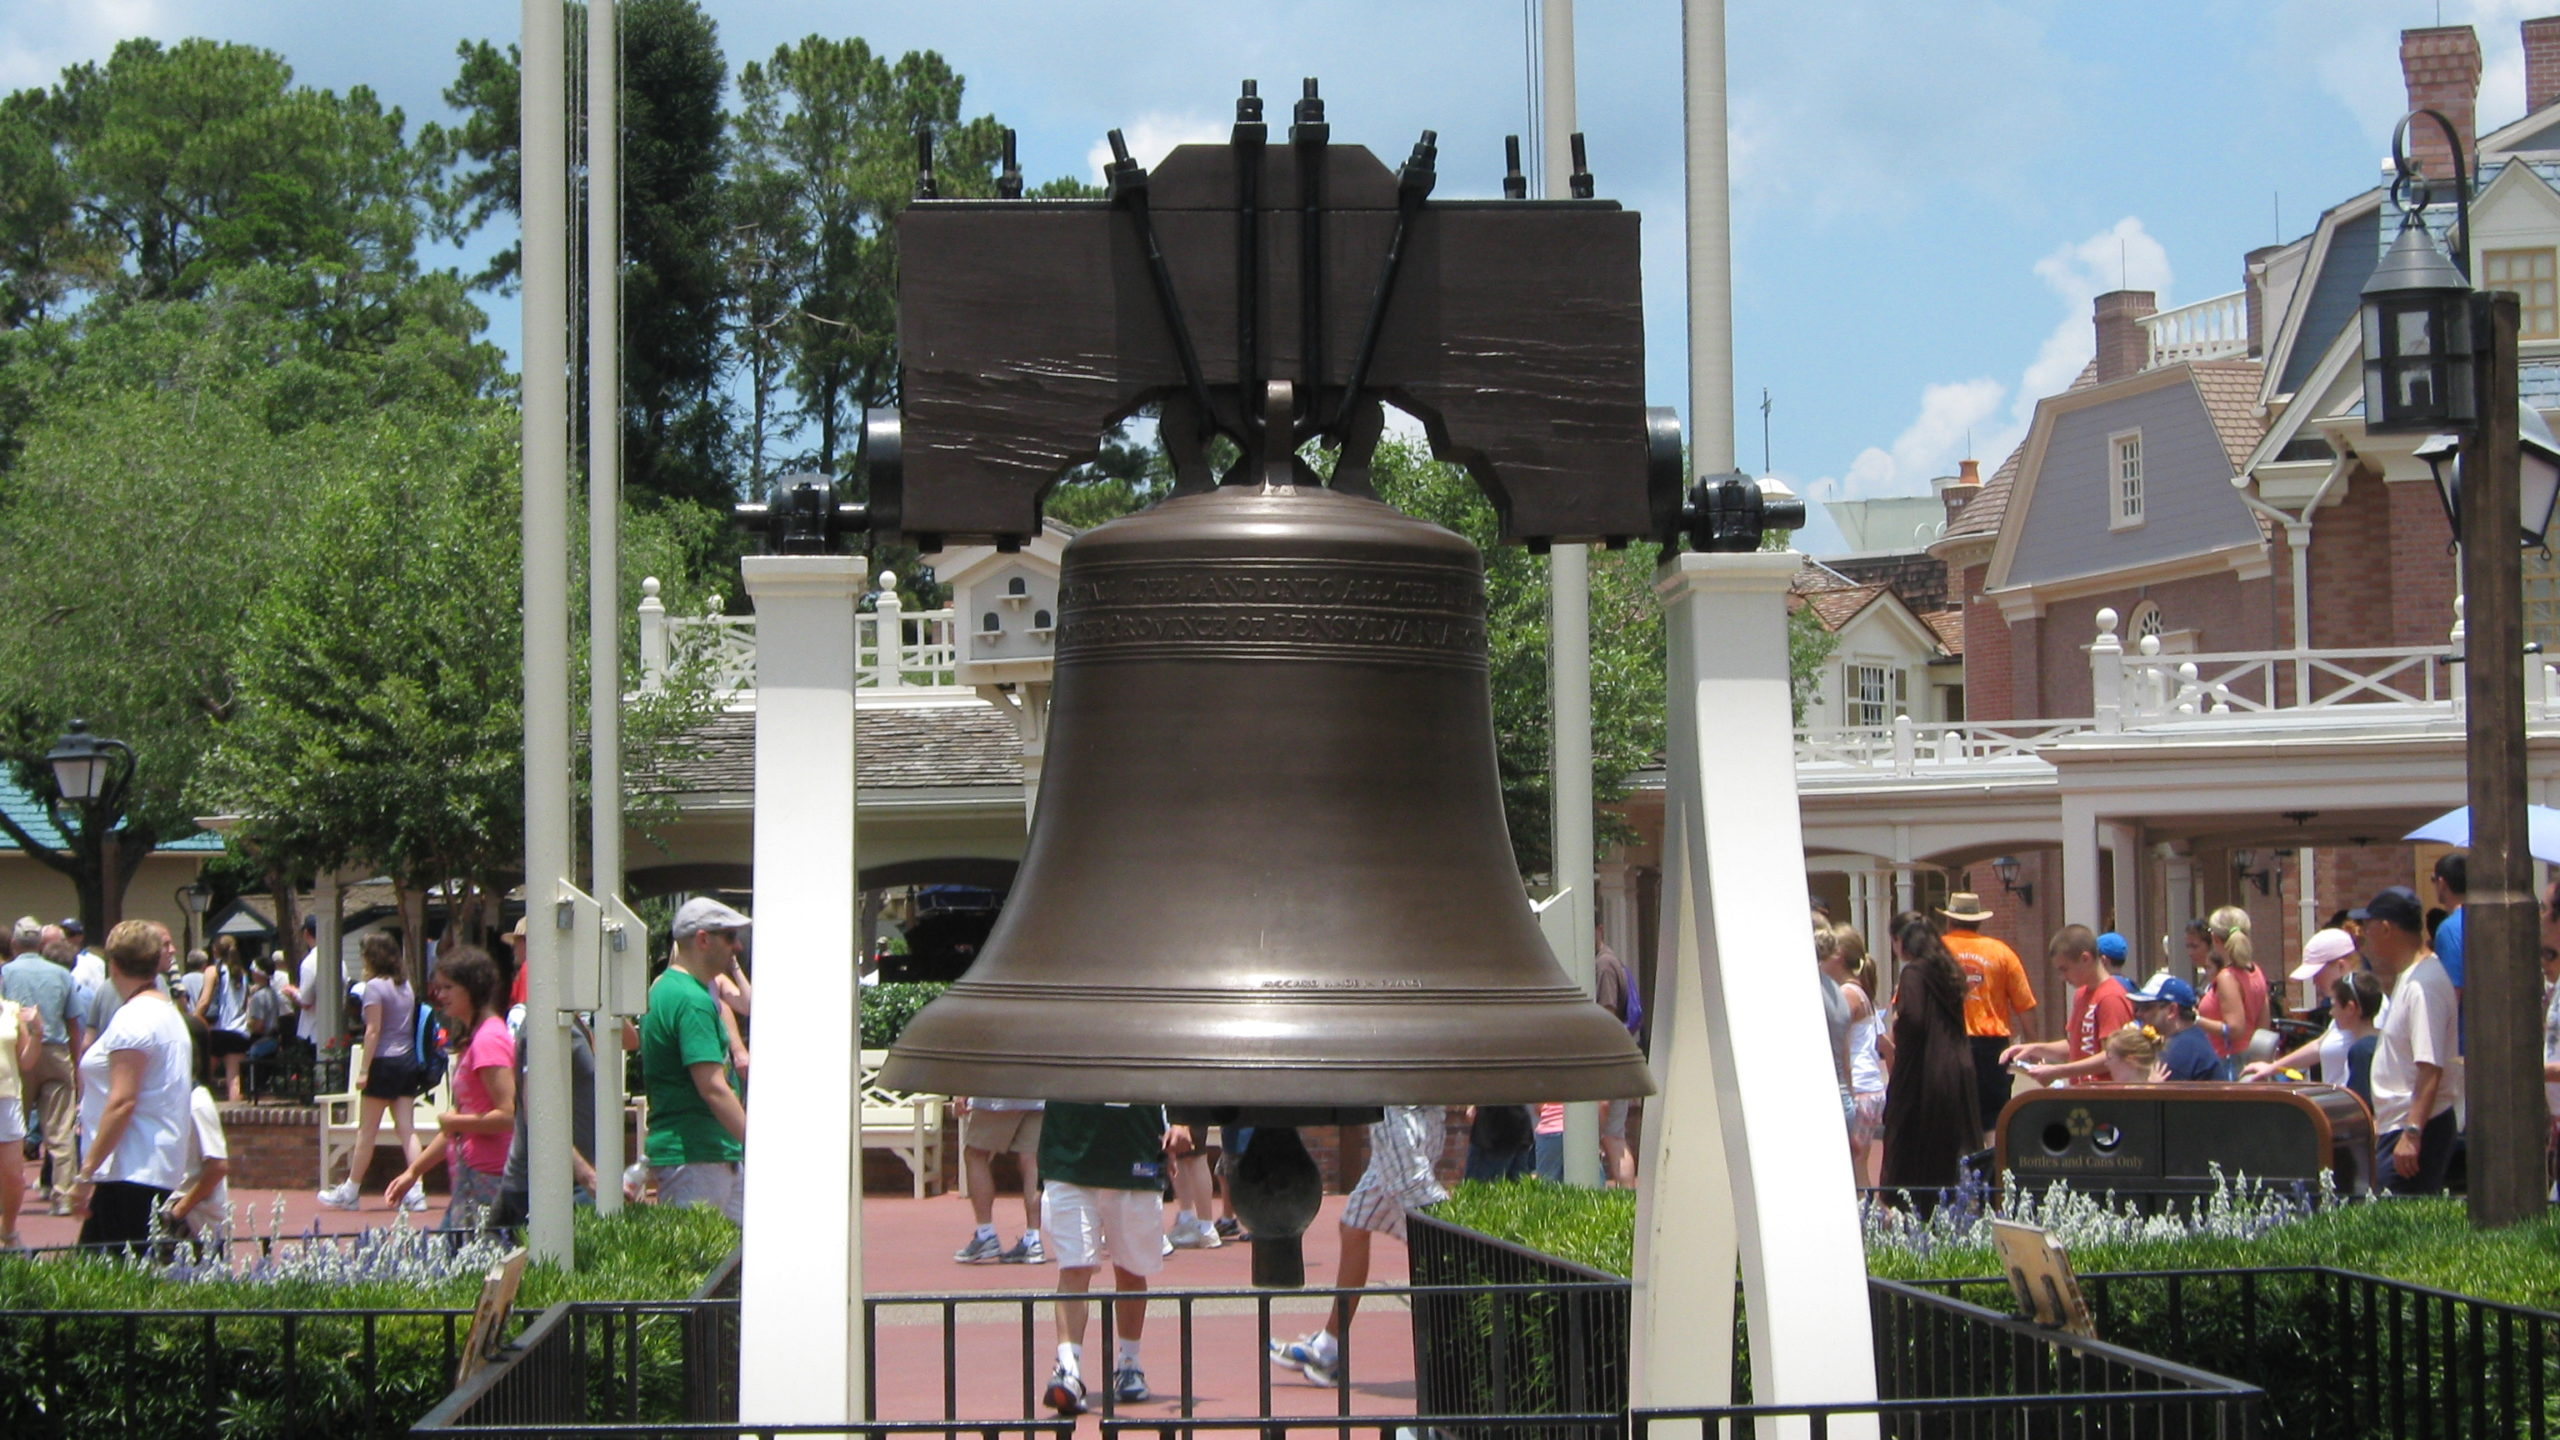 The most magical bell on Earth